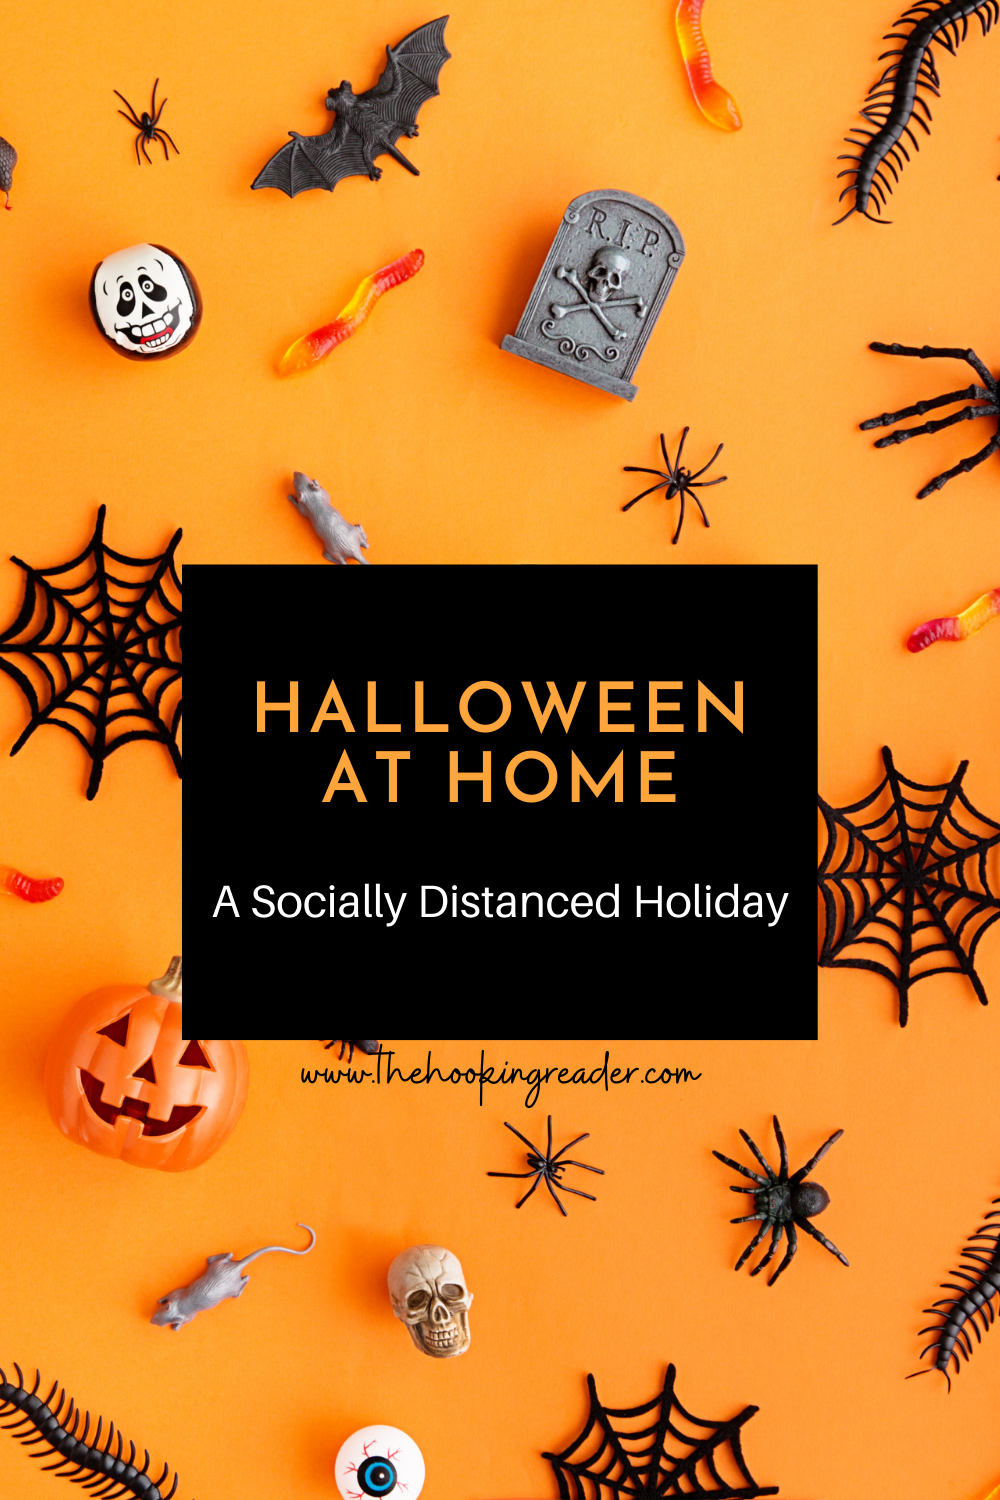 Halloween at Home: A Socially Distanced Holiday